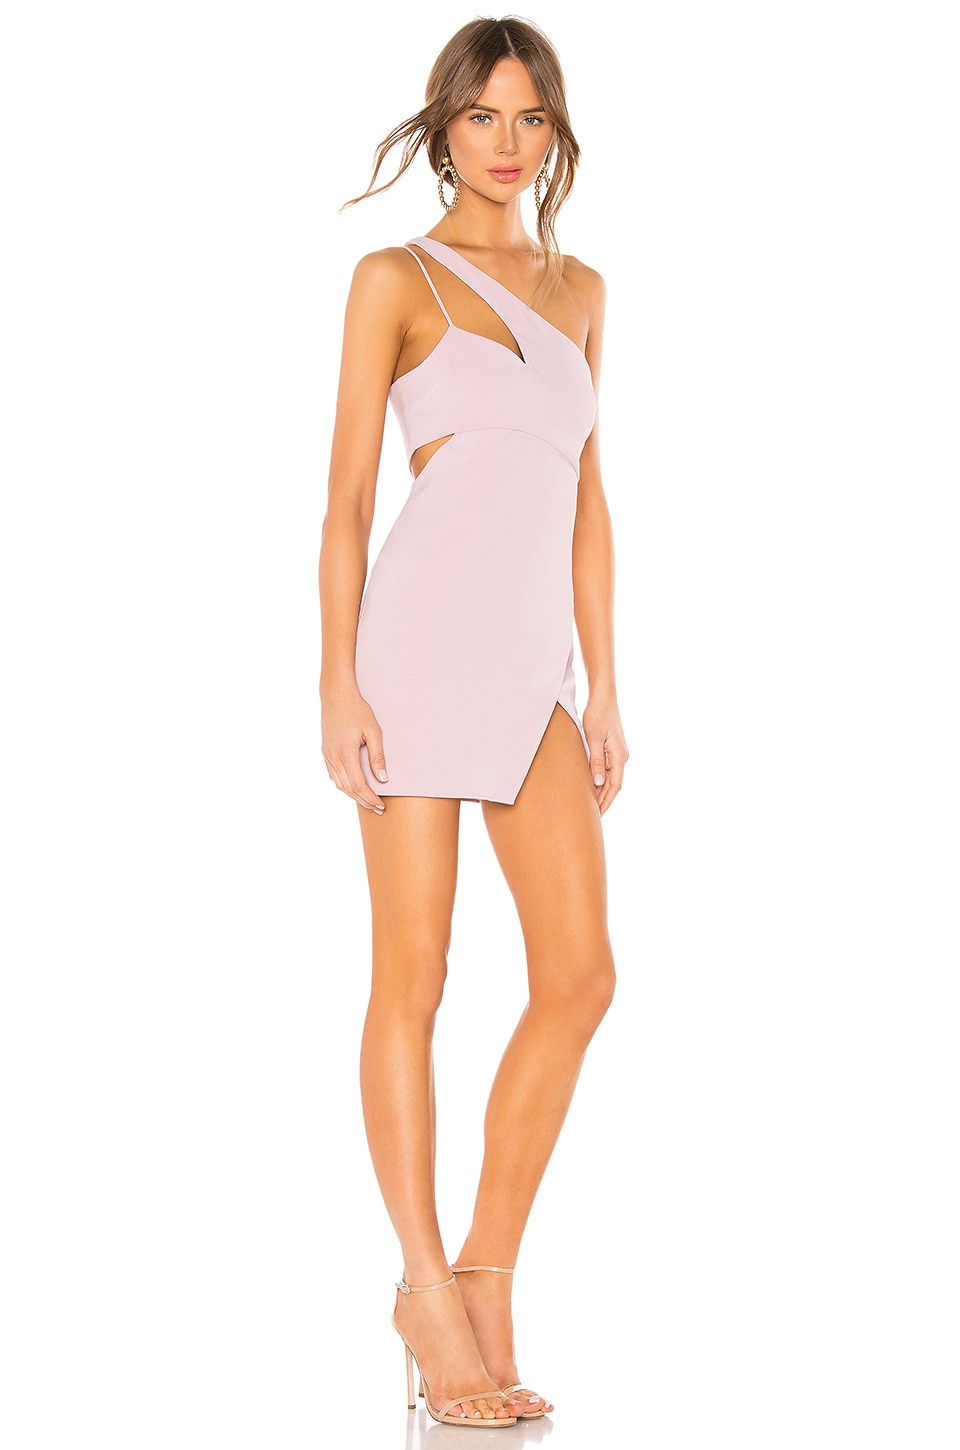 x Naven Chloe Dress, view 2, click to view large image.